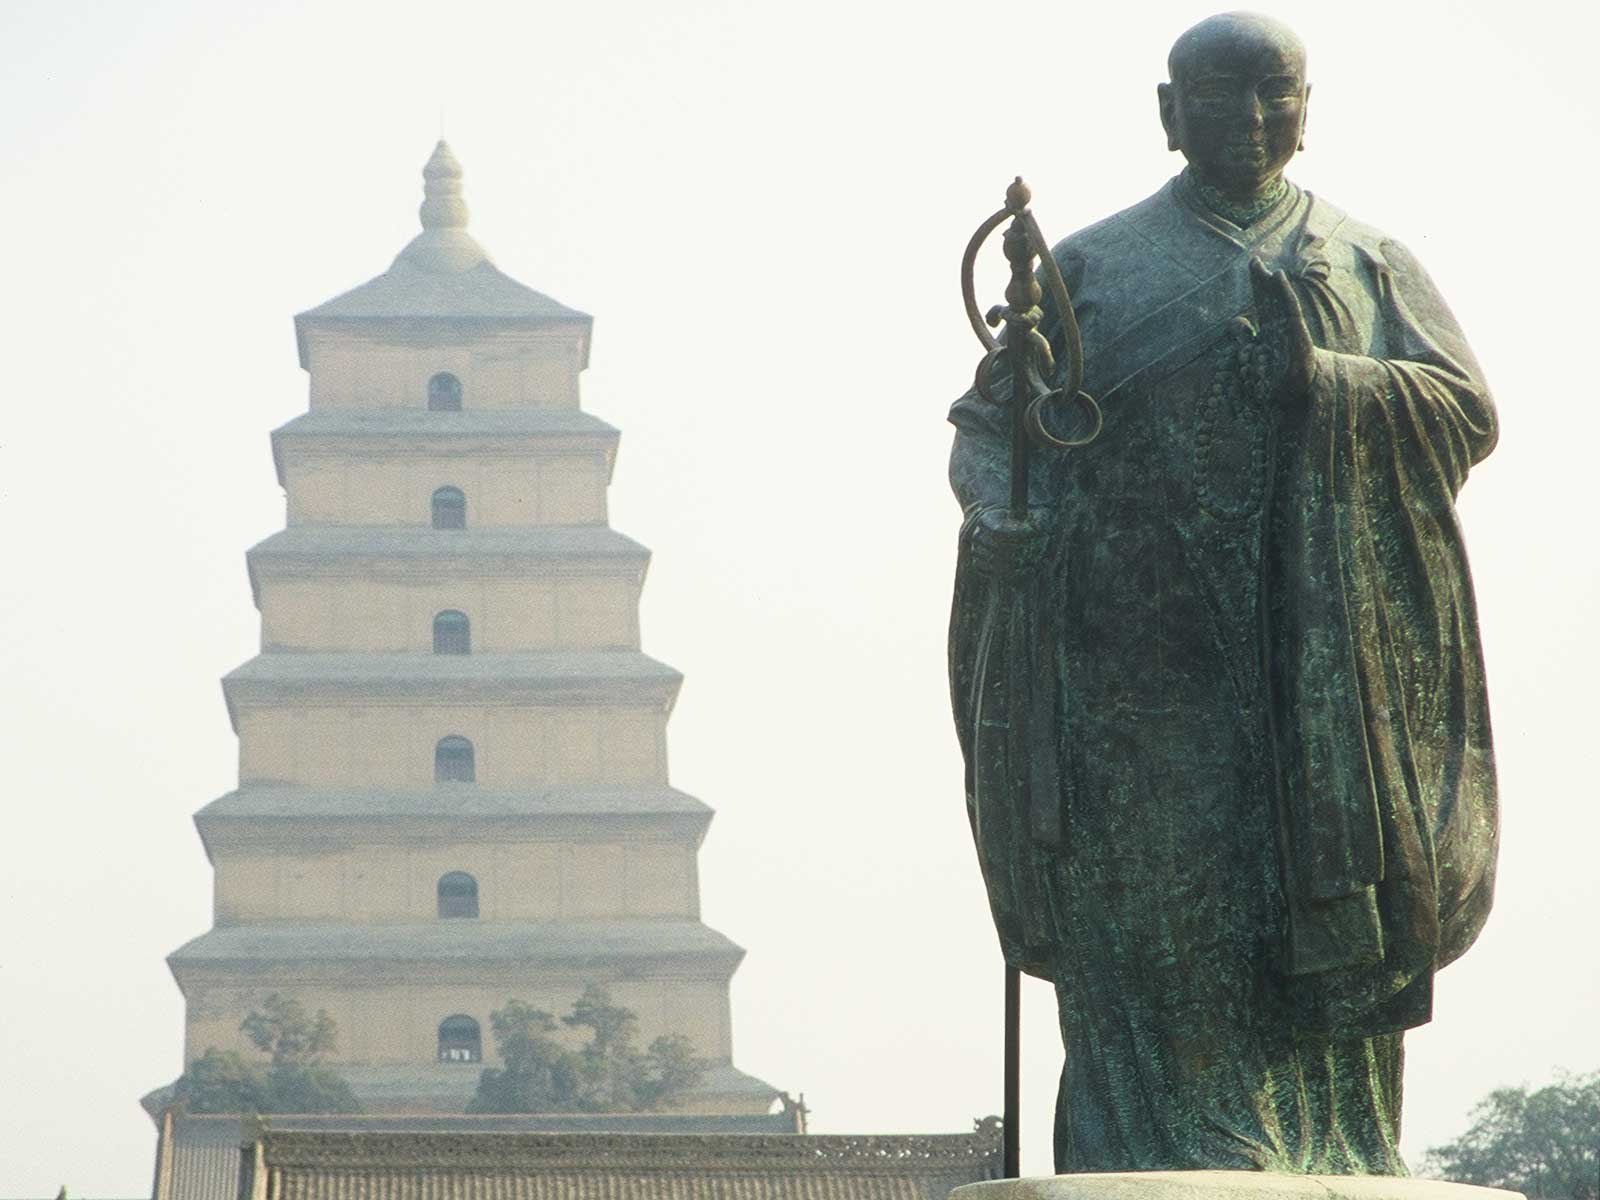 Xuanzang - Big Wild Goose Pagoda in Xian - Silk Road Photo Journal - Dr Steven Andrew Martin